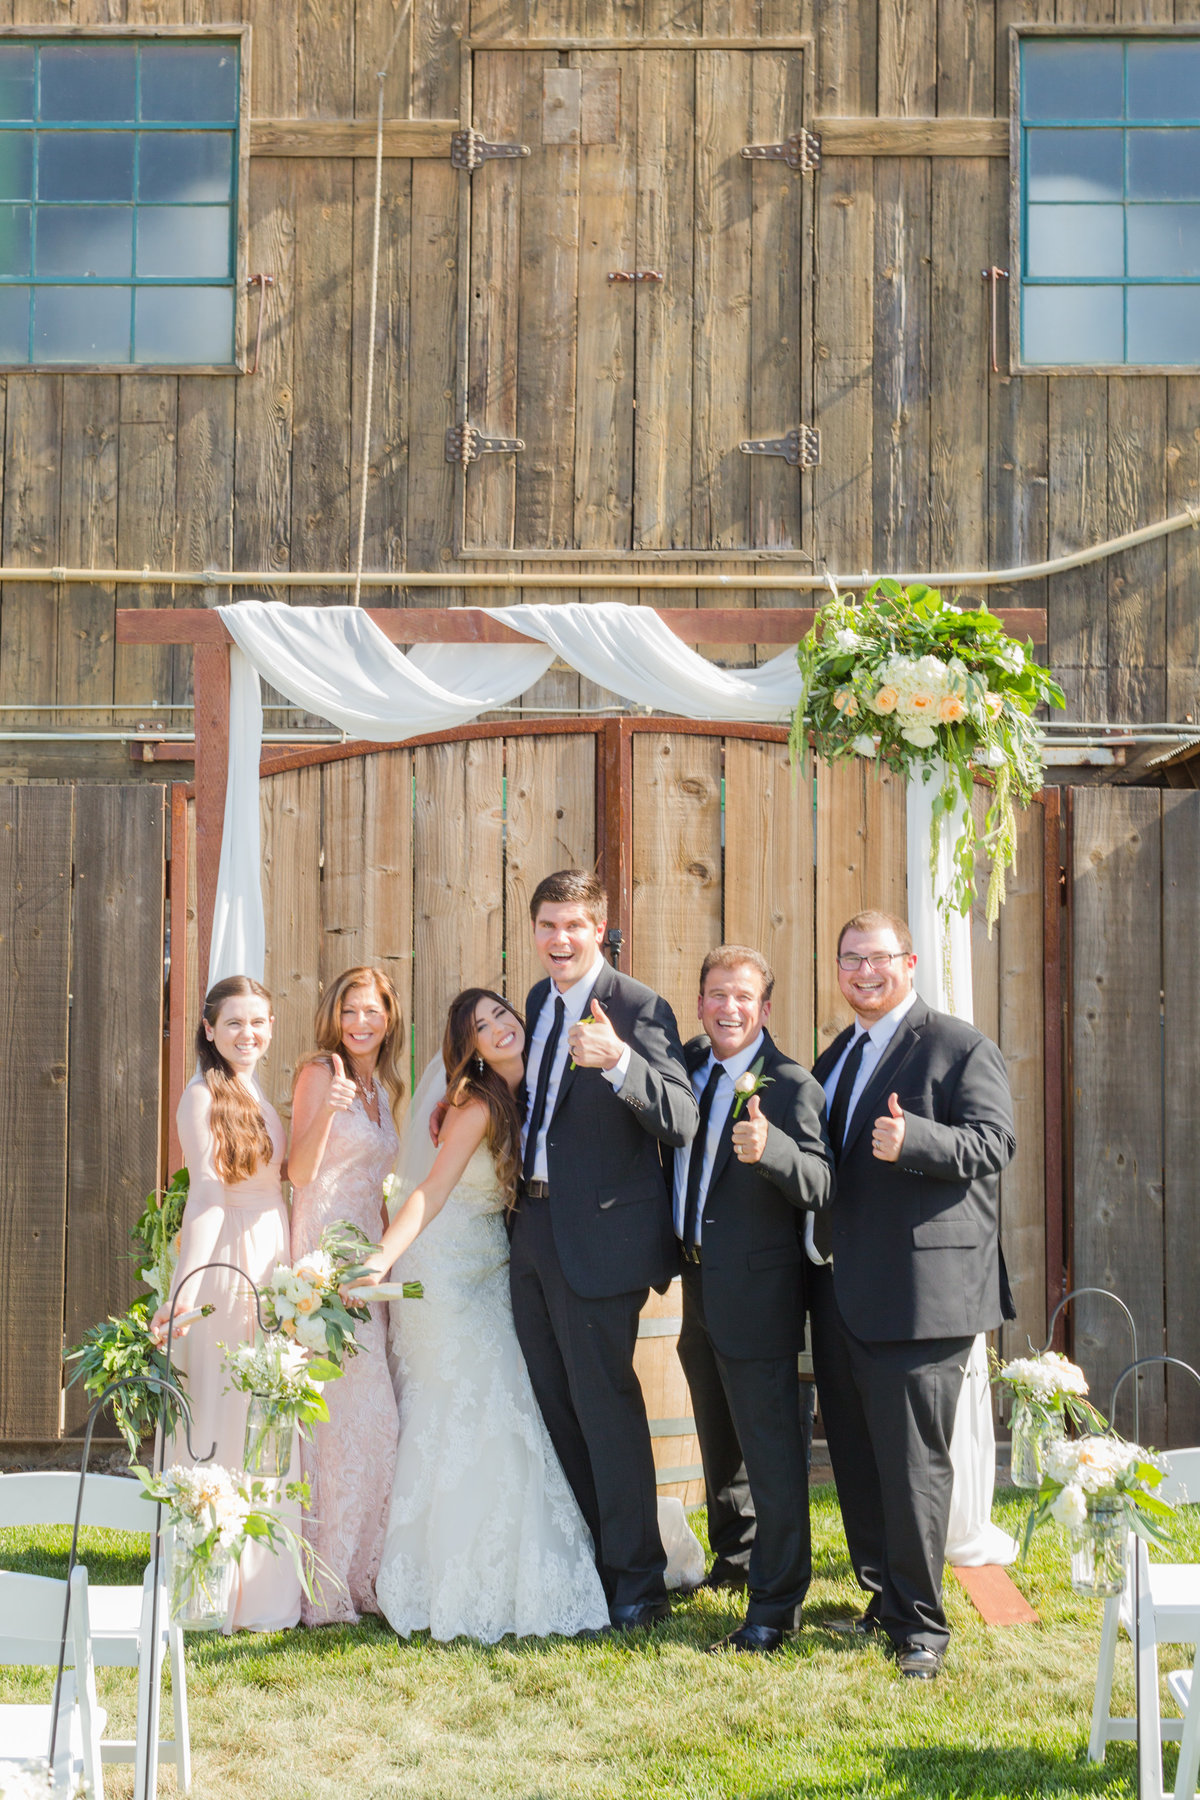 Erica Mendenhall Photography_Barn Wedding_MP_6875web